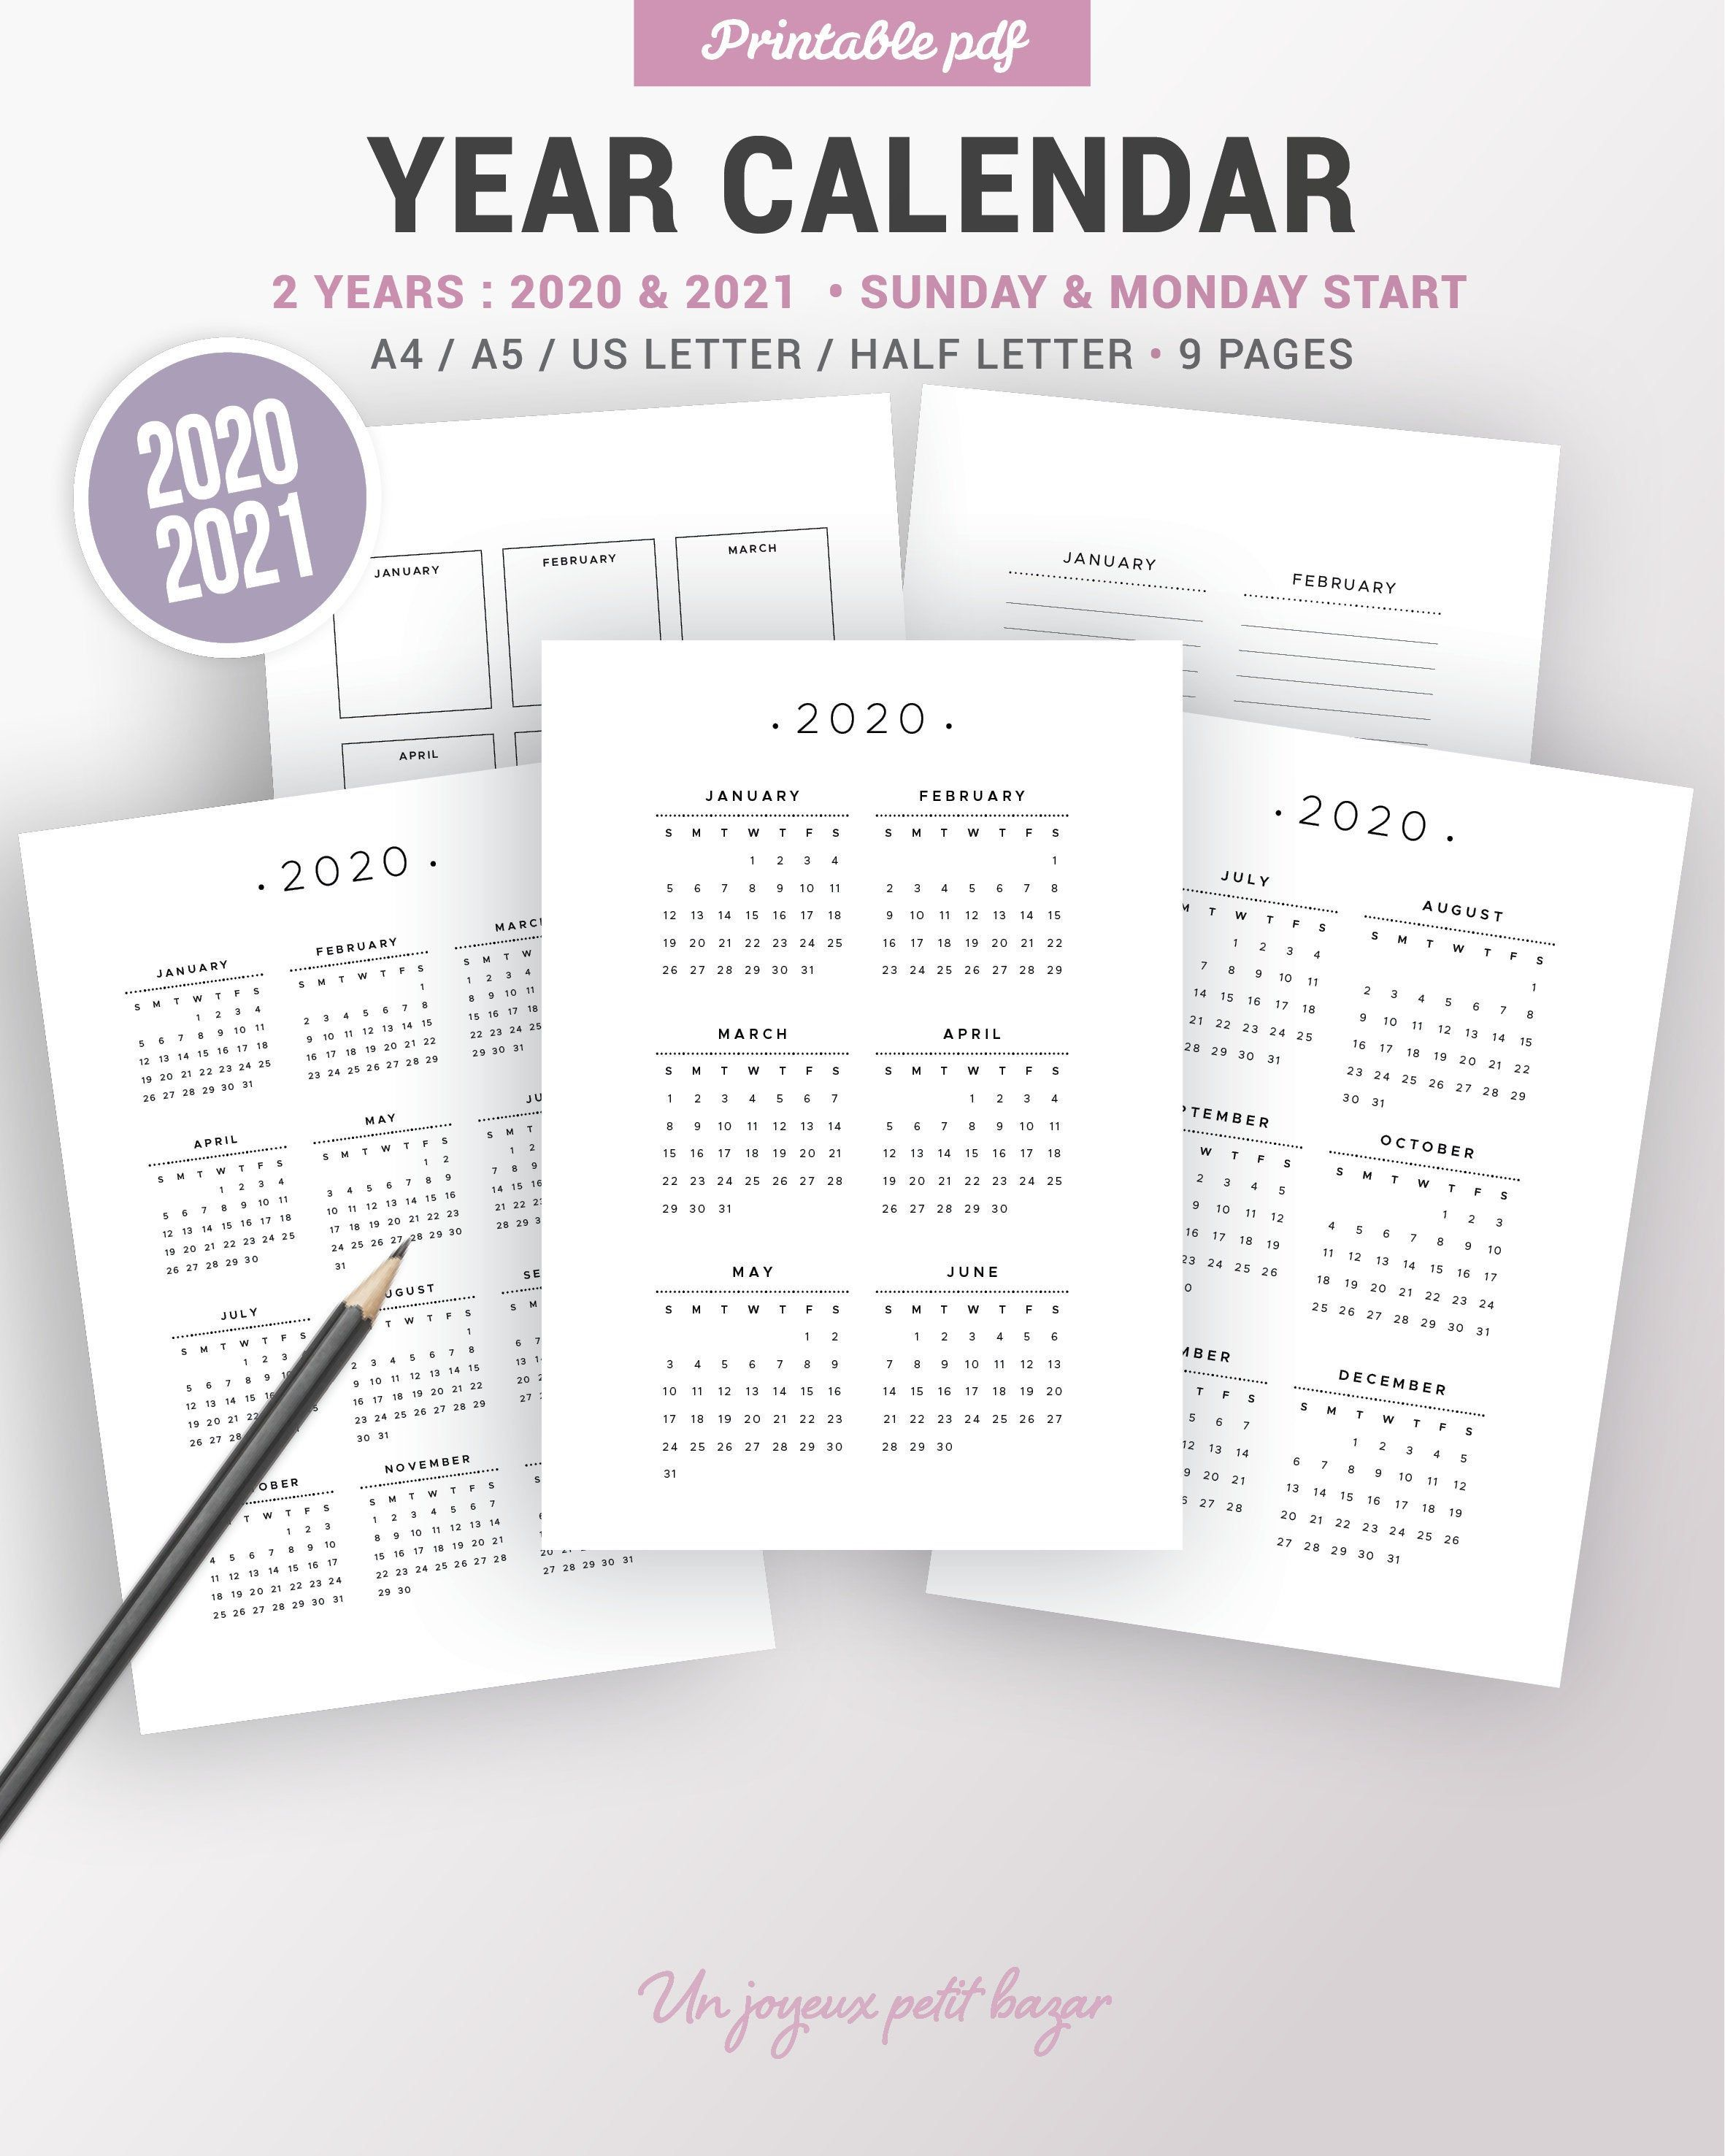 2020 2021 Yearly Calendar Printable Planner Insert Dated Agenda Yearly Notes Sunday And Monday Start Year At A Glance Year Overview Planner Inserts Printable Printable Planner Yearly Calendar